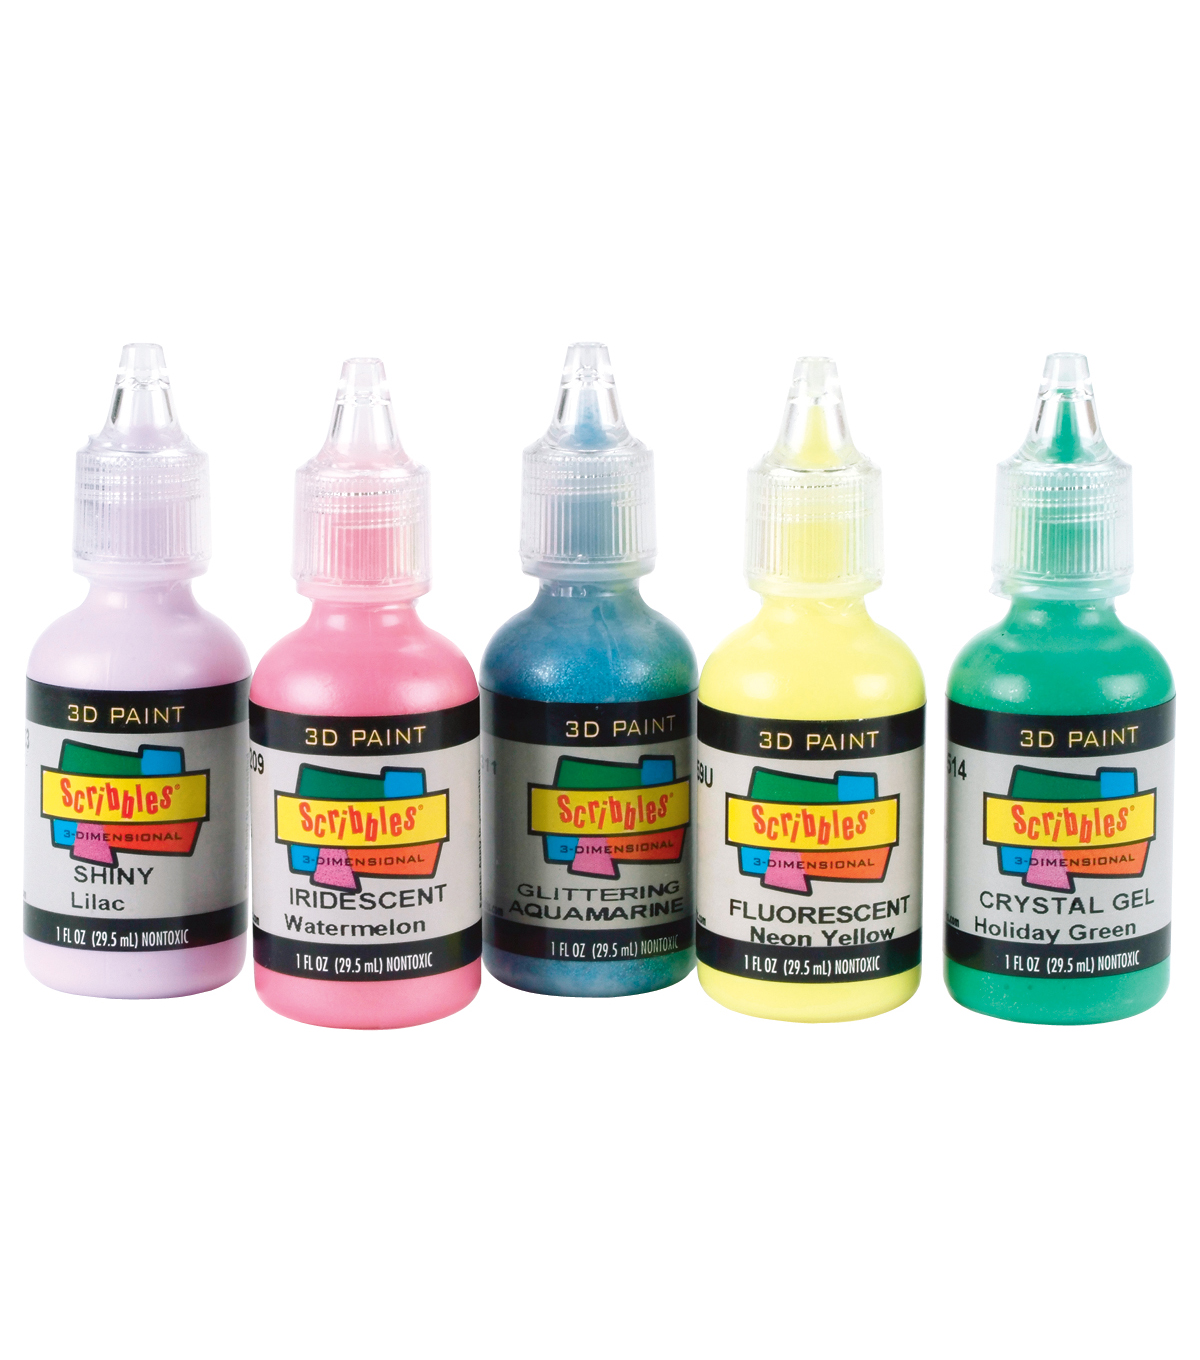 Scribbles 3D Fabric Paint 1oz - Shiny